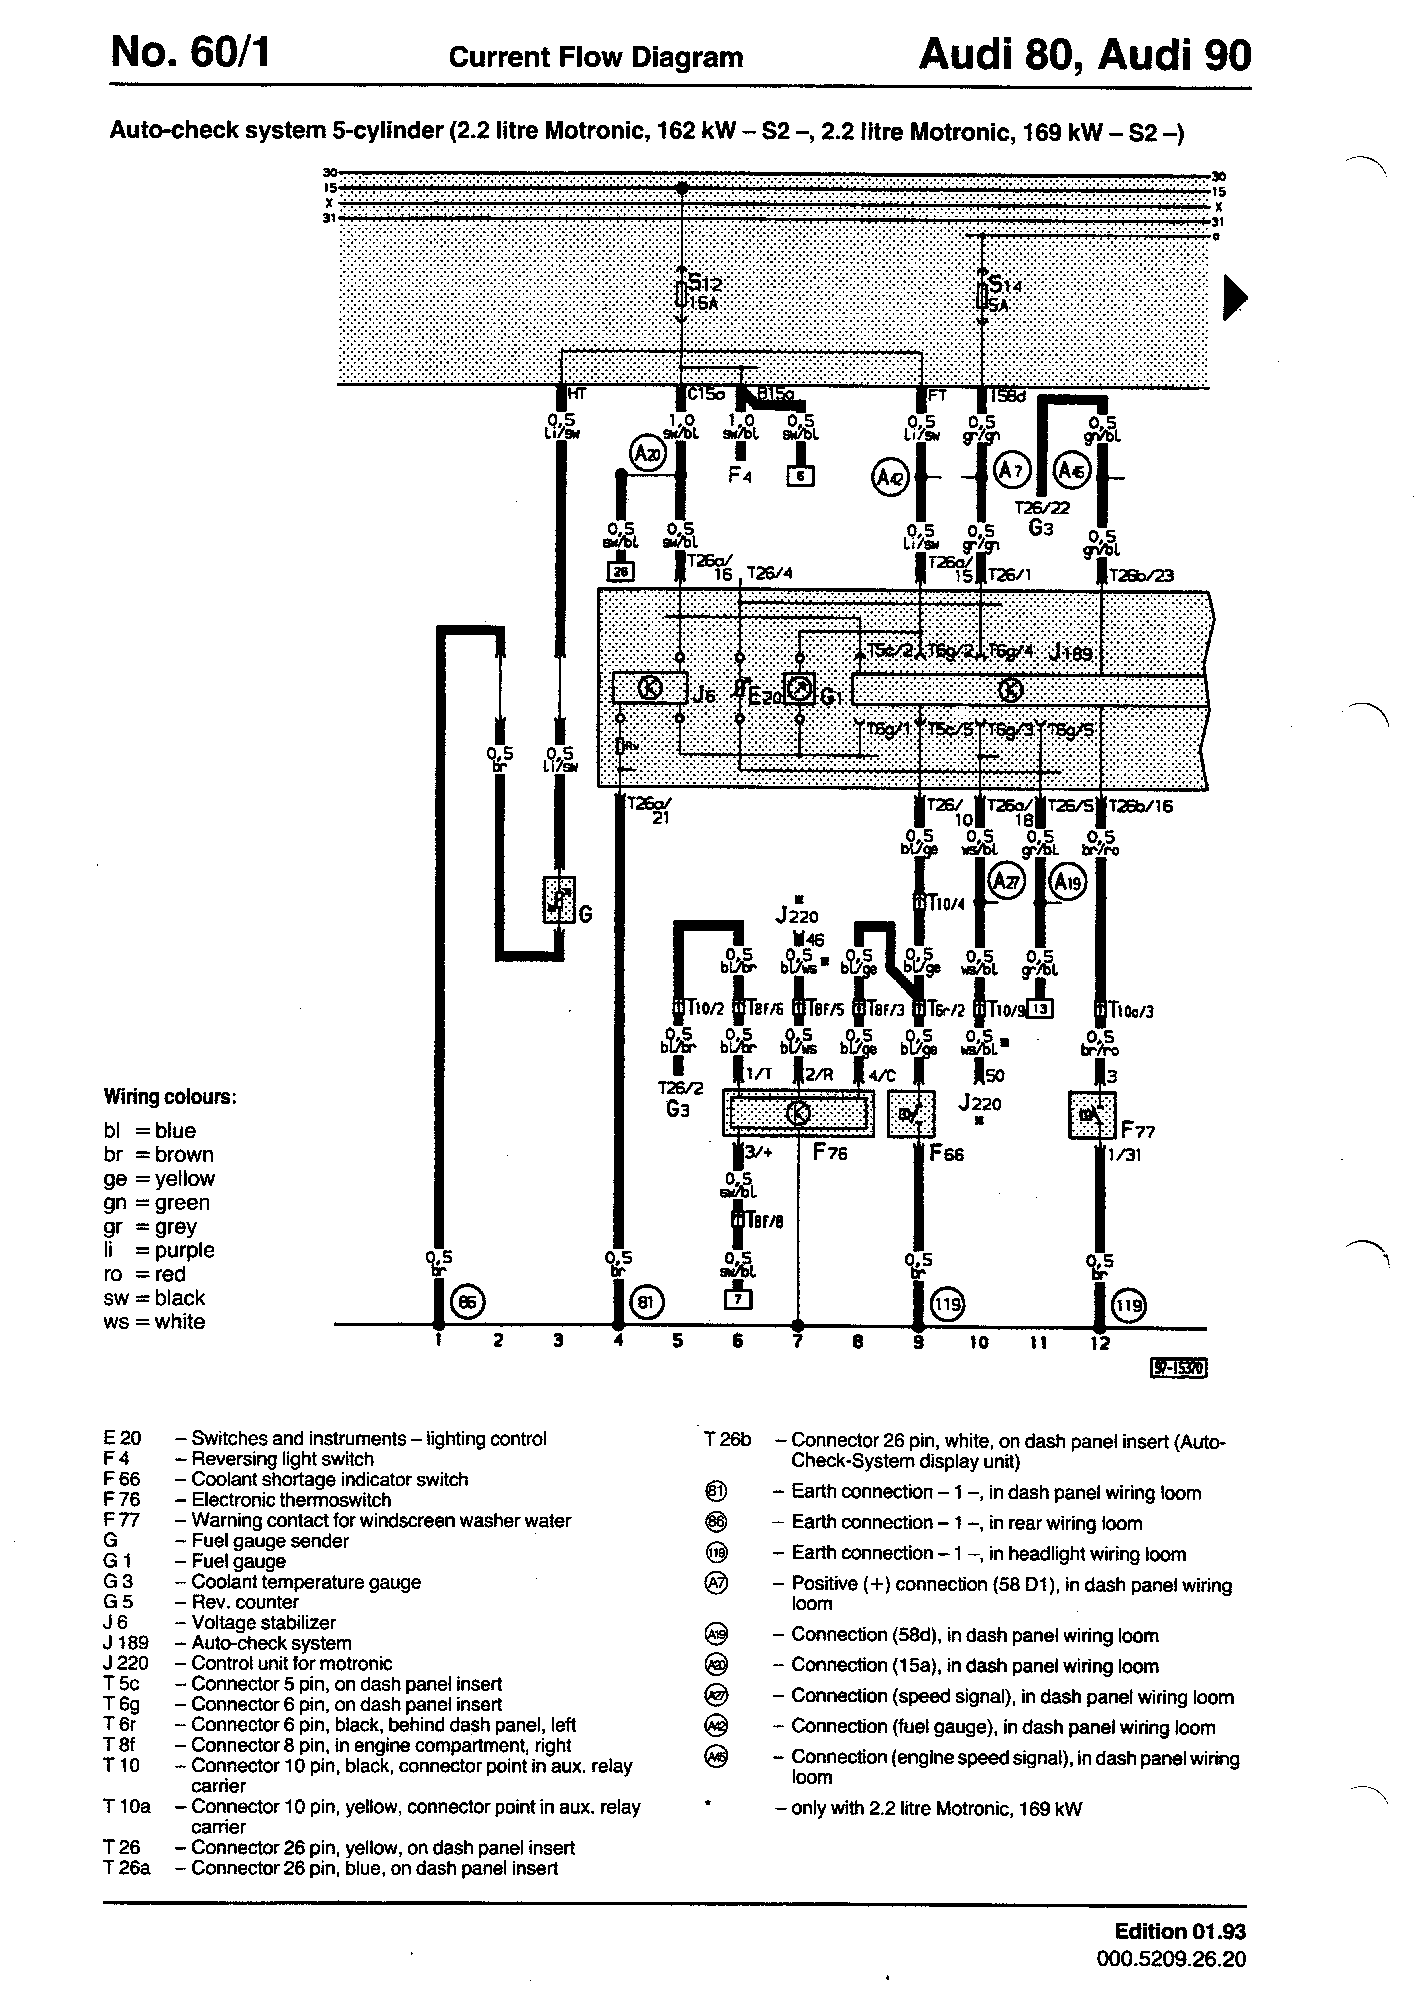 Unique Audi A4 Central Locking Pump Wiring Diagram #diagram  #diagramtemplate #diagramsamplePinterest